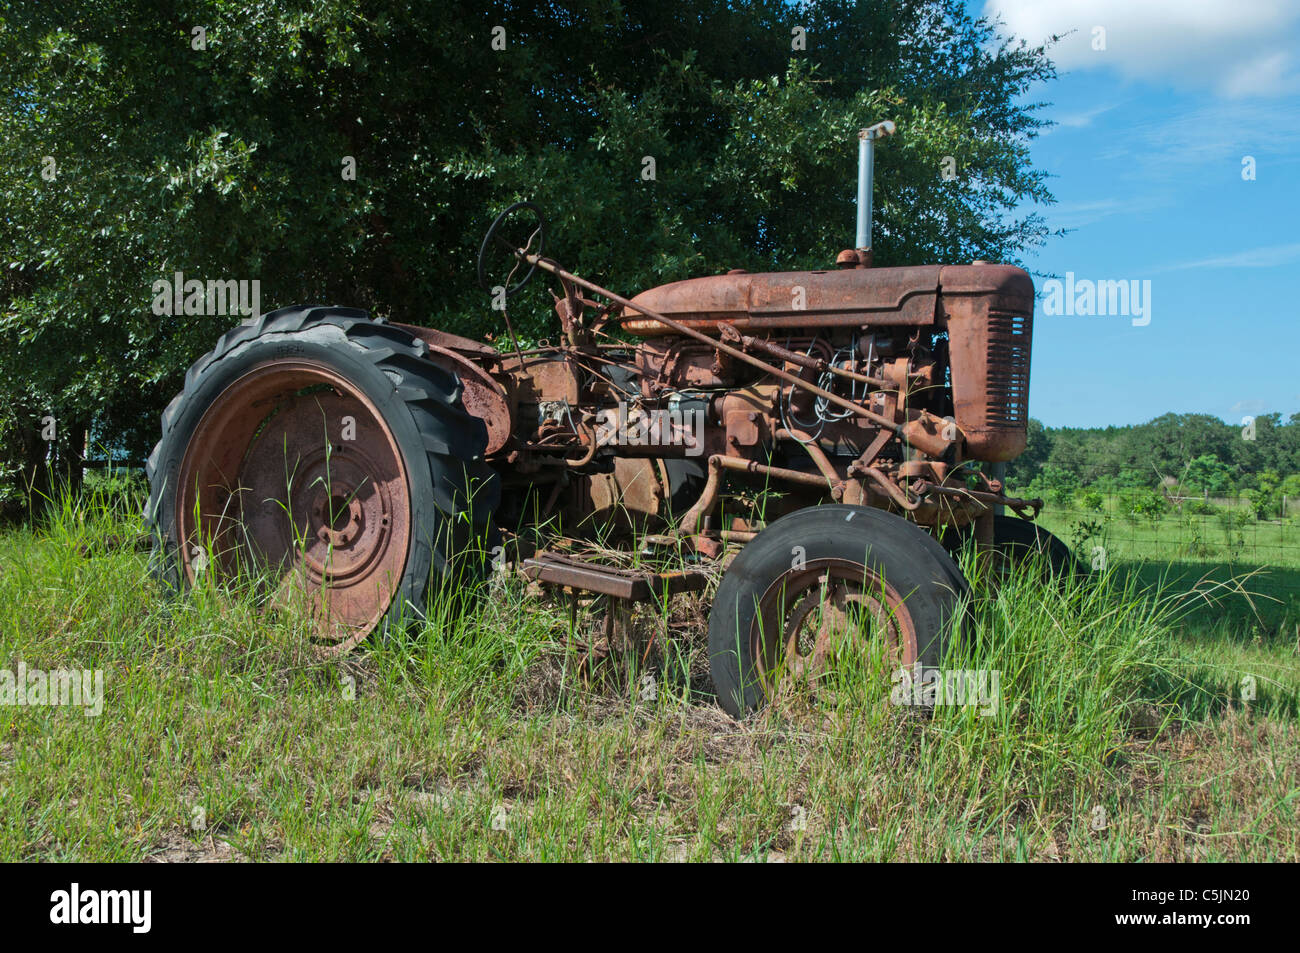 Antique International Farm Tractor from Yesteryear located in Leesburg, Florida USA - Stock Image